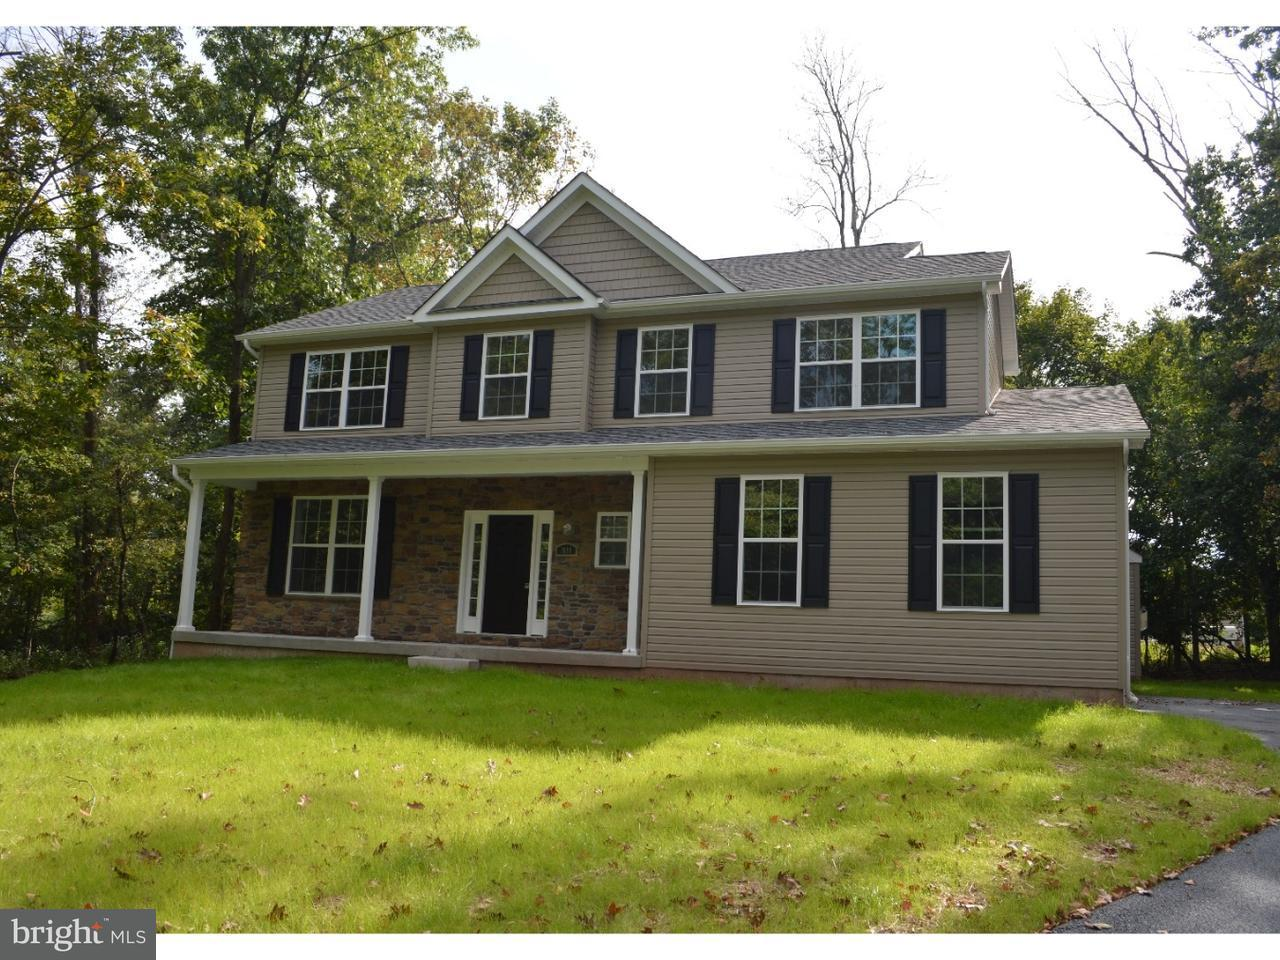 Single Family Home for Sale at 725 SCHWAB Road Hatfield, Pennsylvania 19440 United States